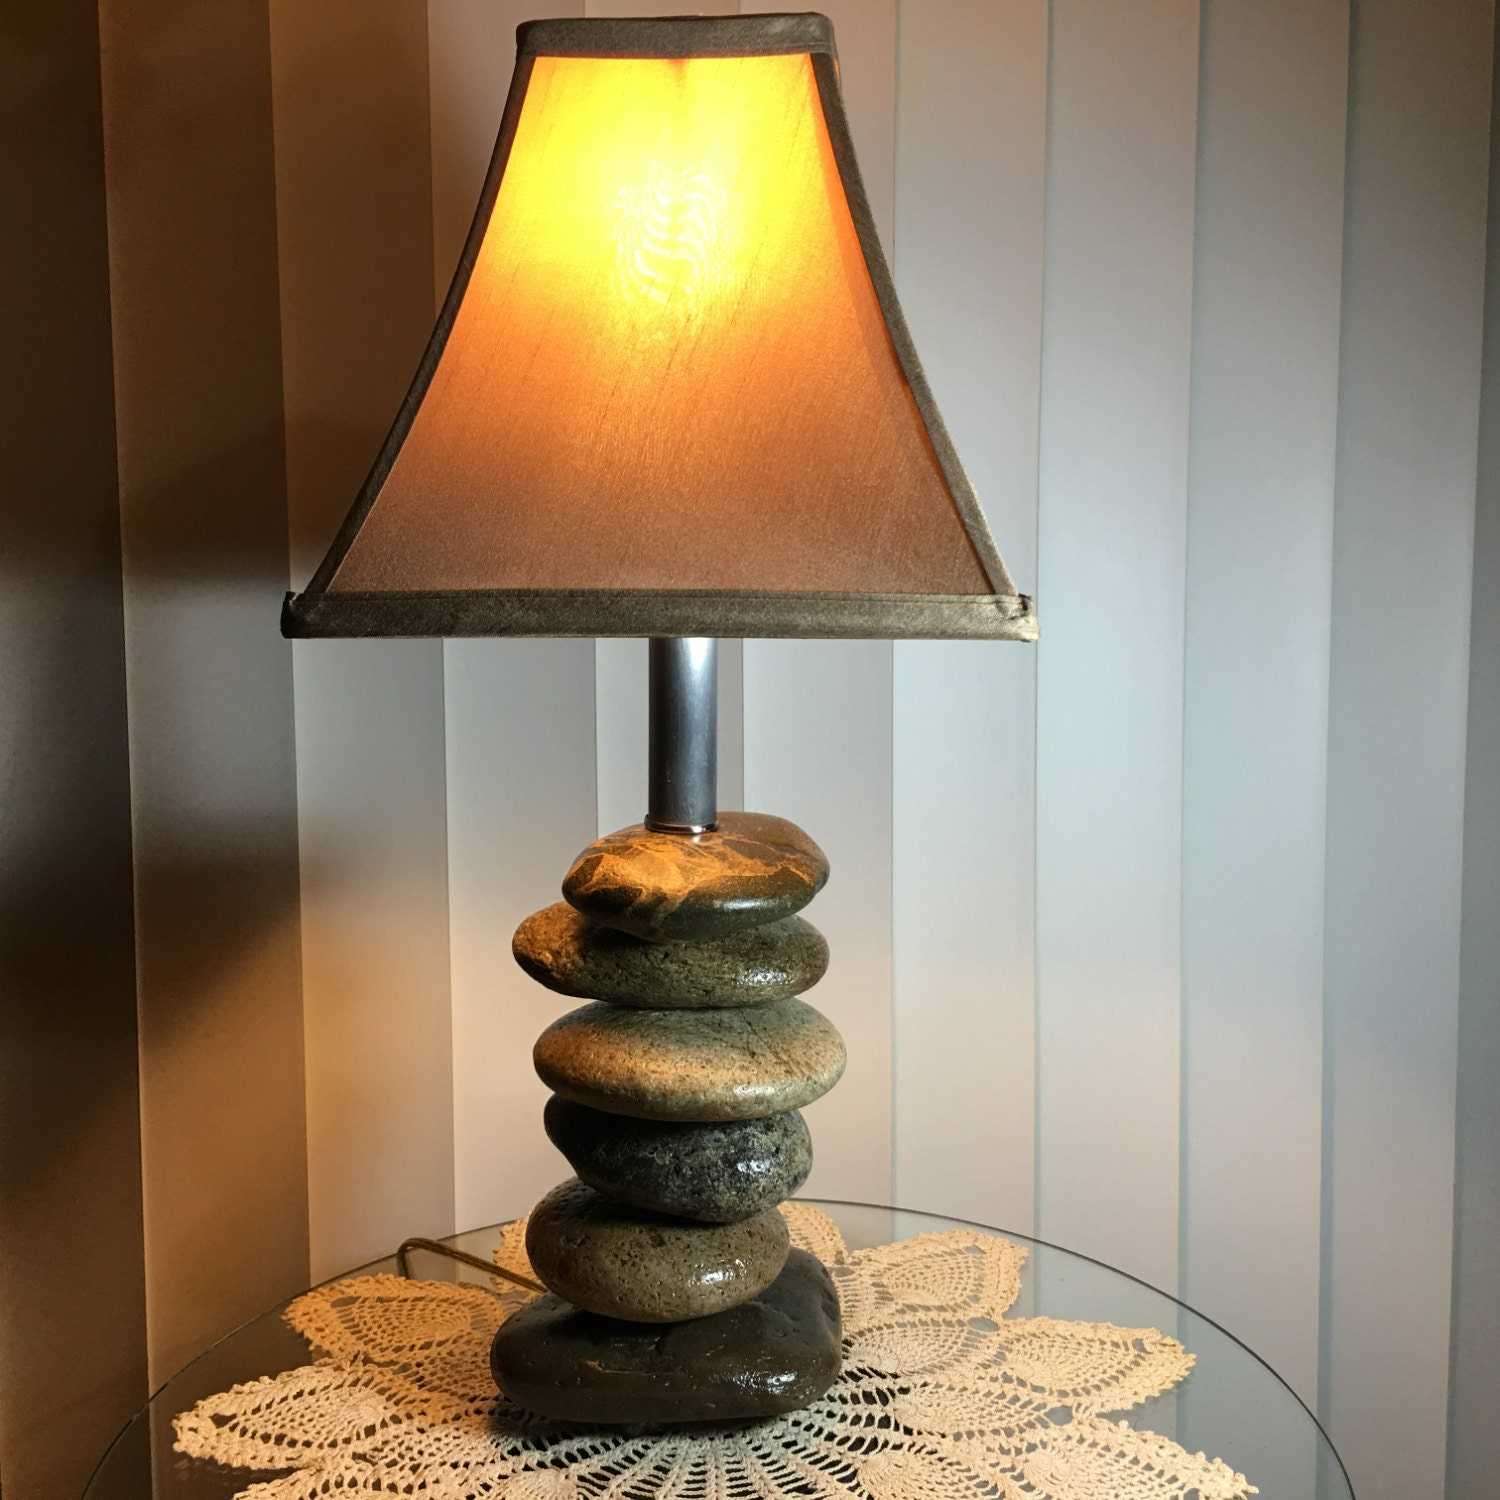 Rock table lamps rock table lamprock lamp by for Rock lamp